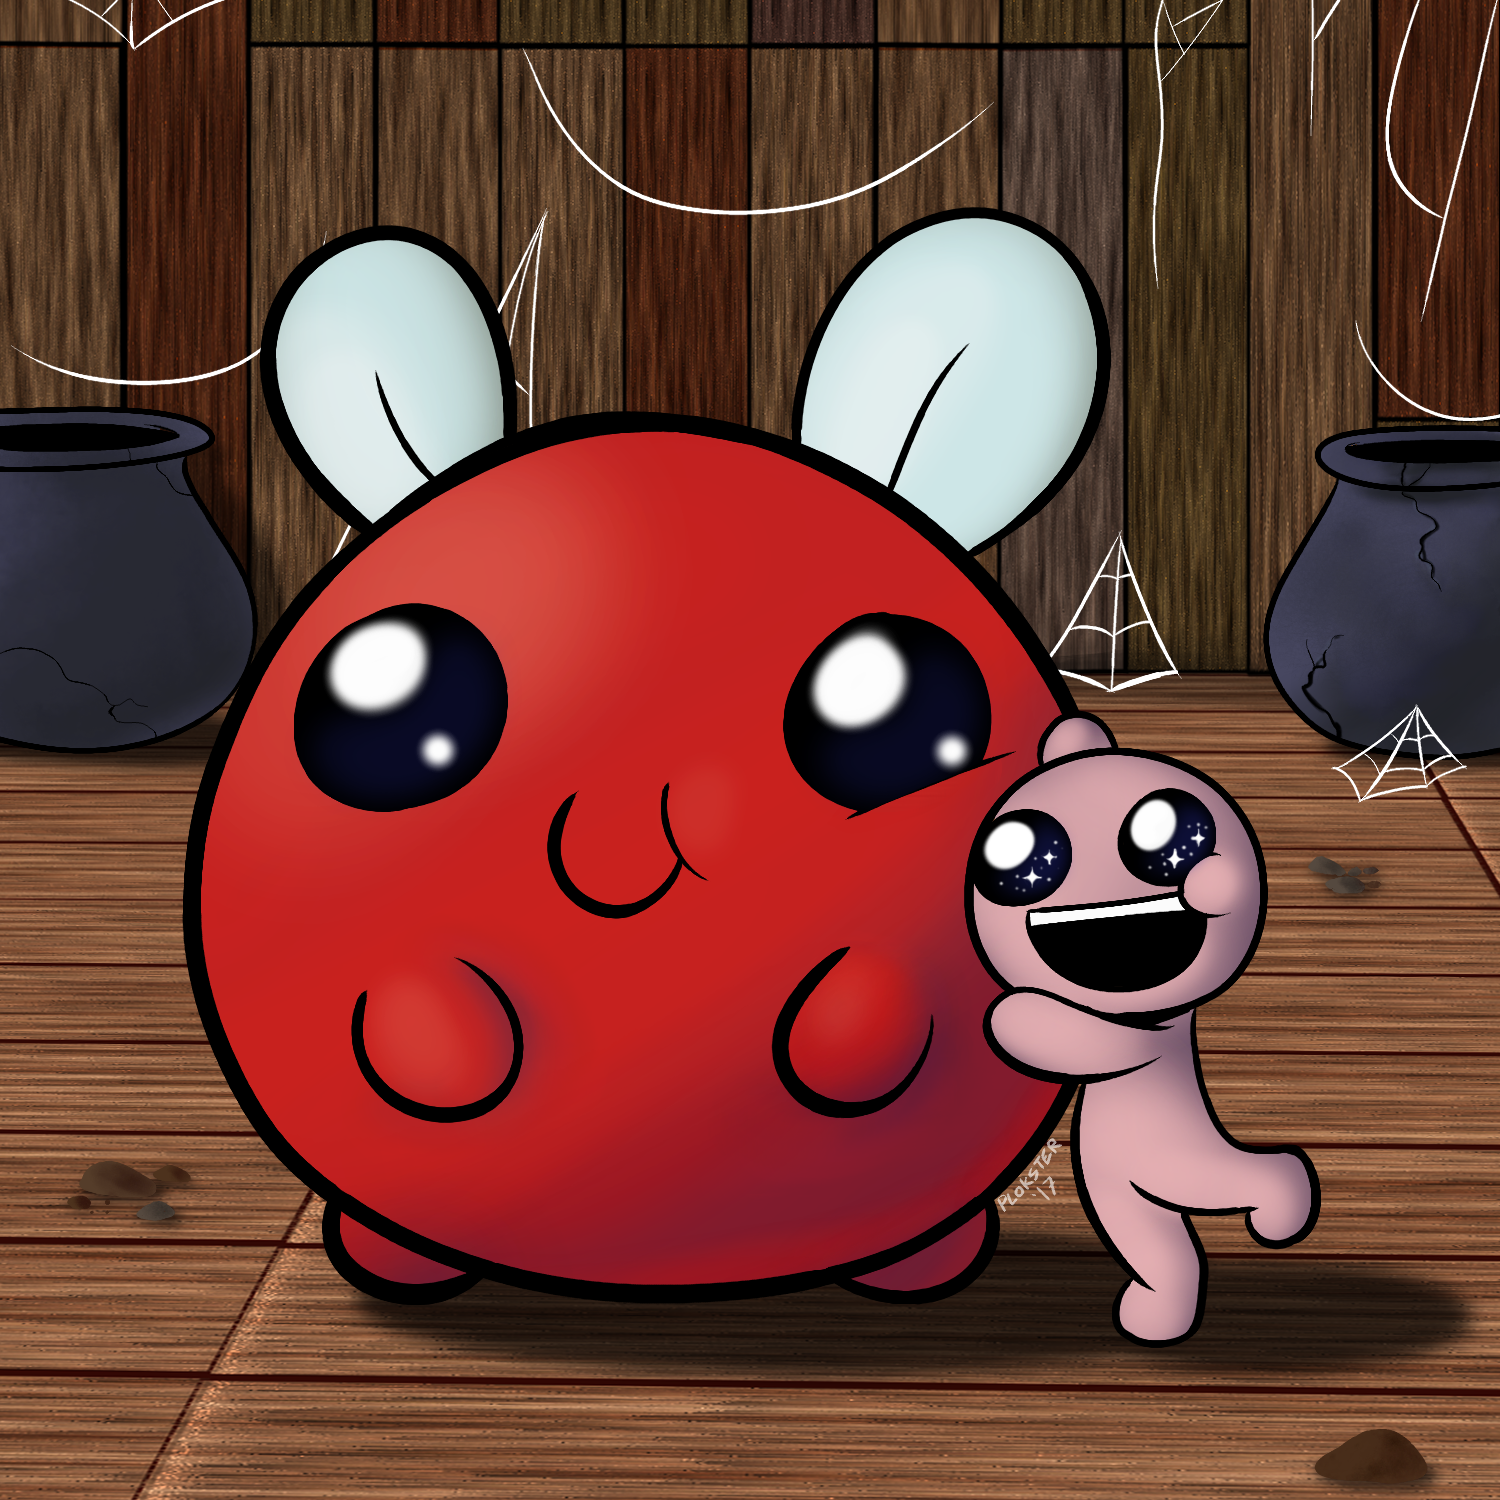 7lpfcs9wrx7y Png 1500 1500 The Binding Of Isaac Isaac Game Pictures